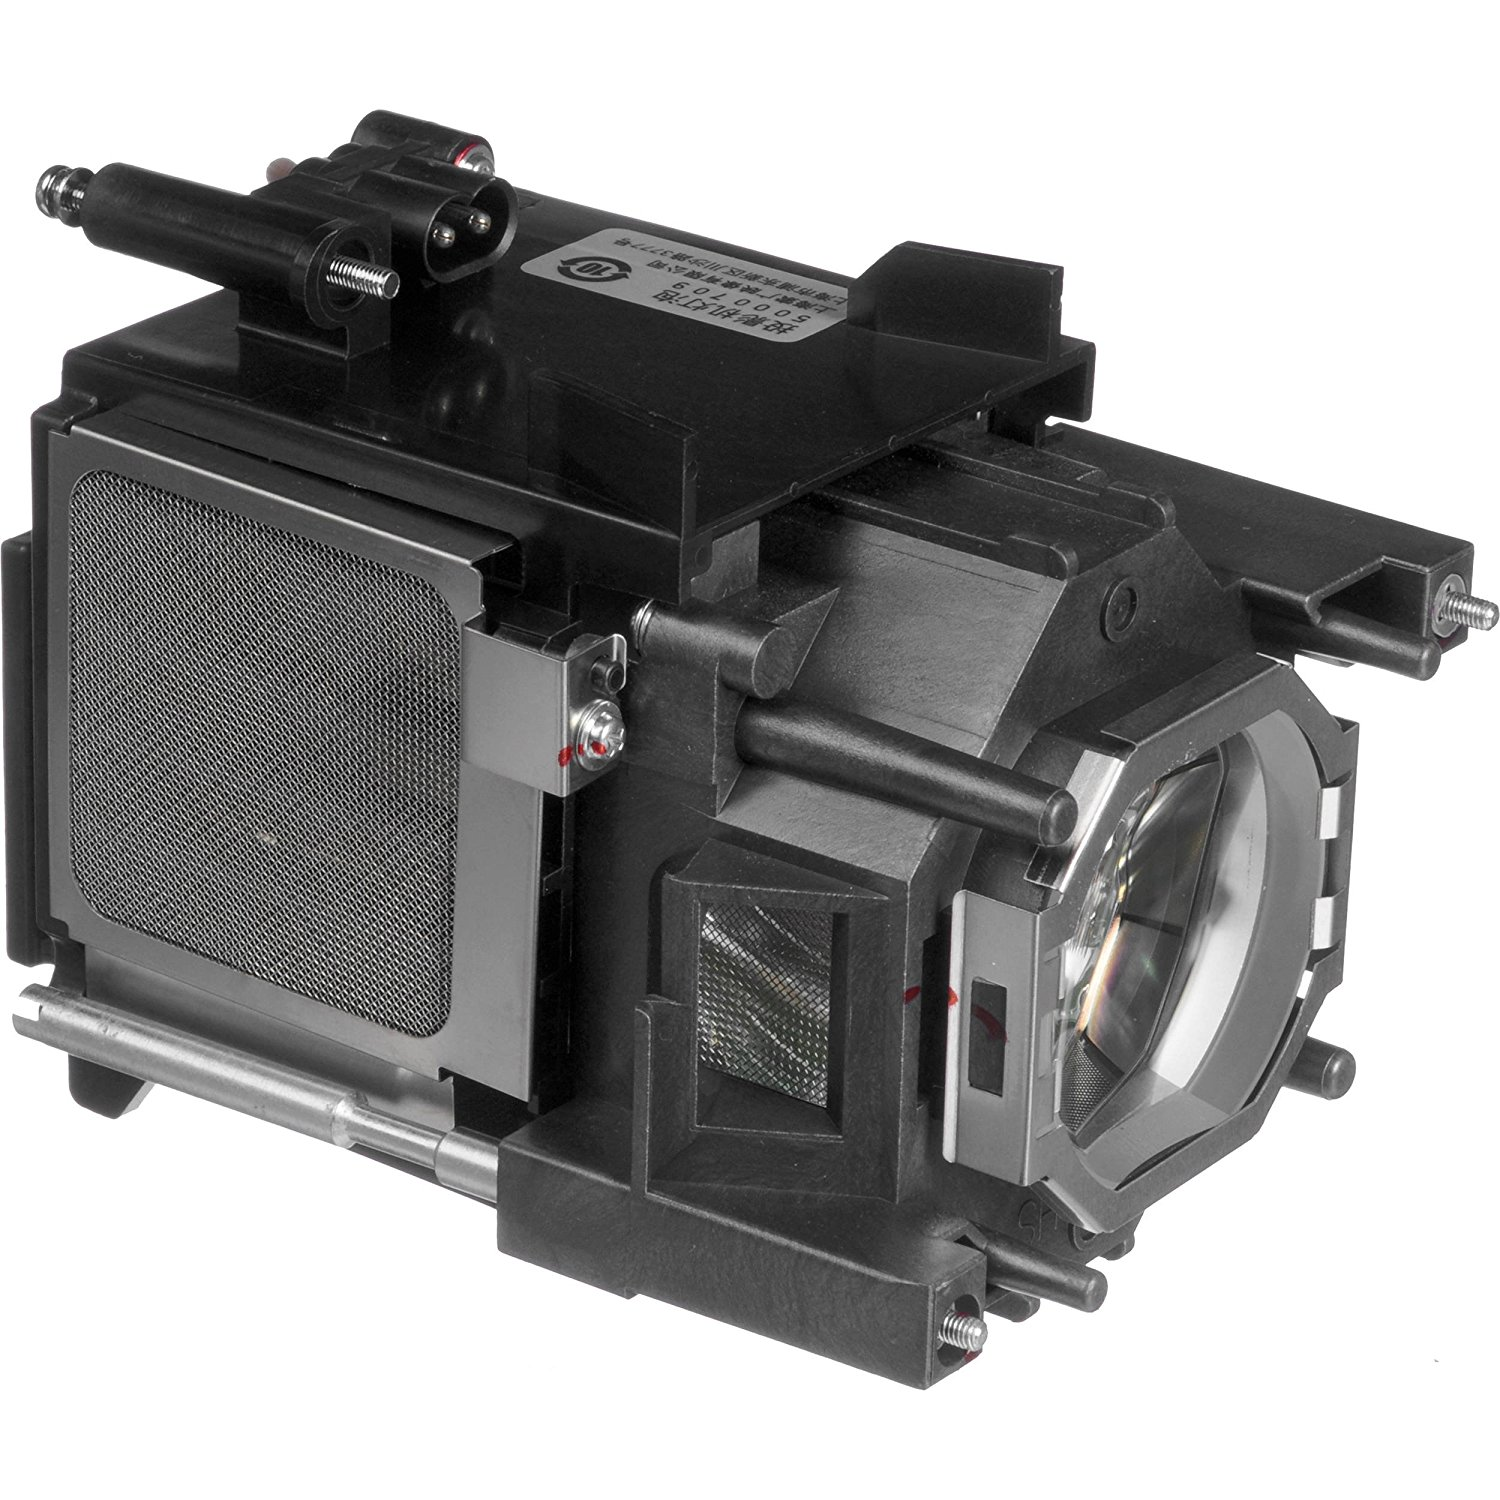 LMP-F331 Replacement Projector Lamp with Housing for SONY VPL-FH31 VPL-FH35 VPL-FH36 VPL-FX37 VPL-F500H lmp h160 lmph160 for sony vpl aw10 vpl aw10s vpl aw15 vpl aw15s projector bulb lamp with housing with 180 days warranty